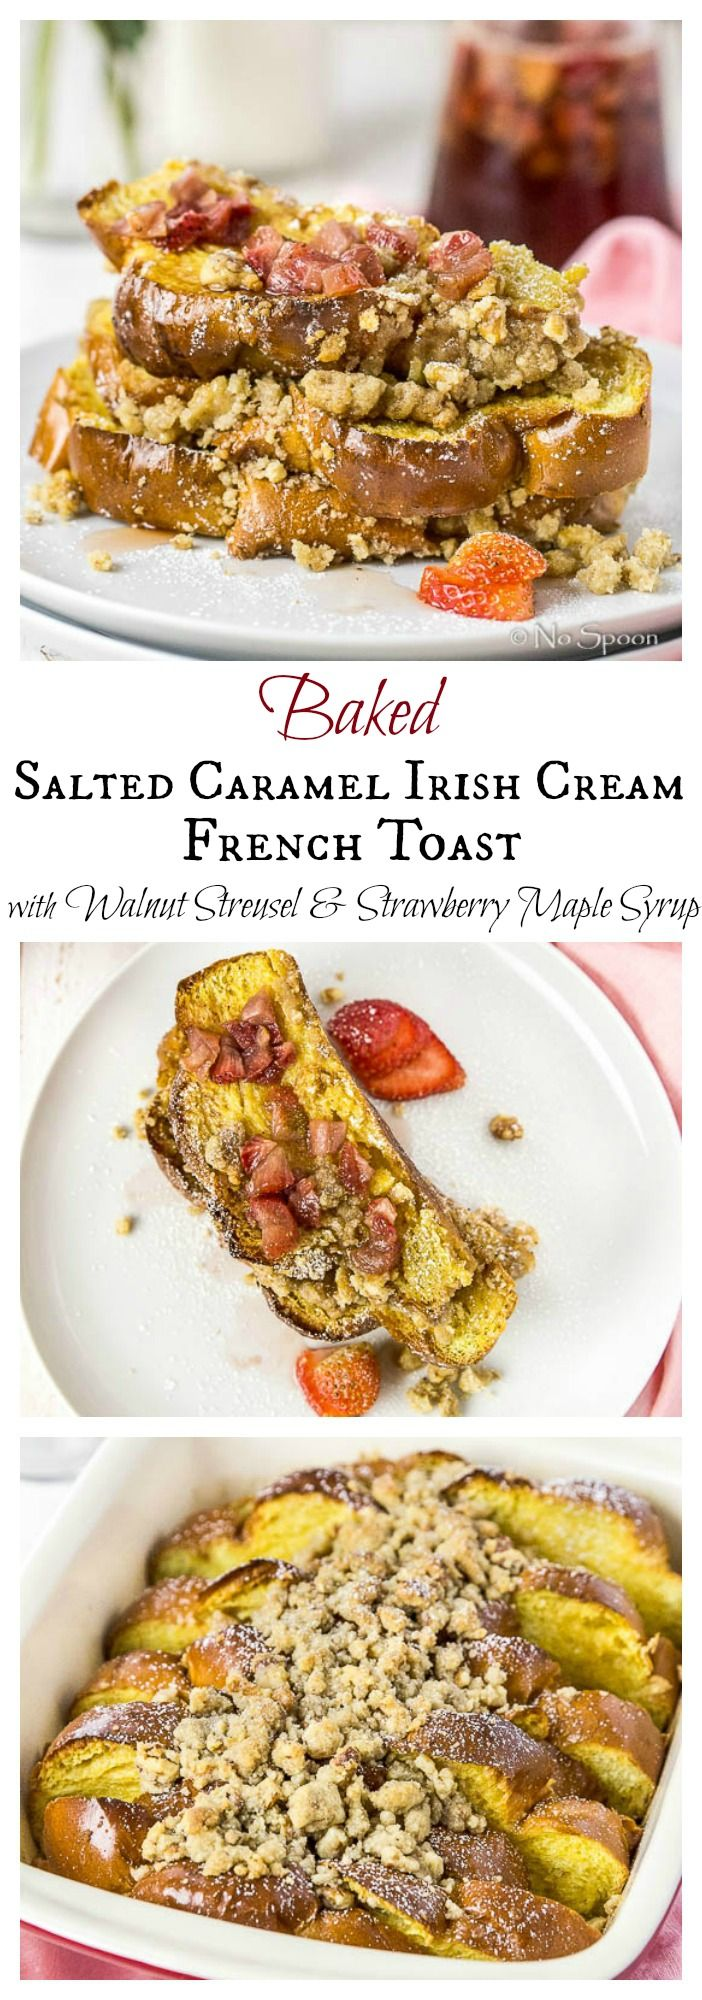 Overnight Baked Salted Caramel Irish Cream Challah French Toast with Walnut Streusel & Strawberry Syrup. Long Name, but SO Easy To Make!!